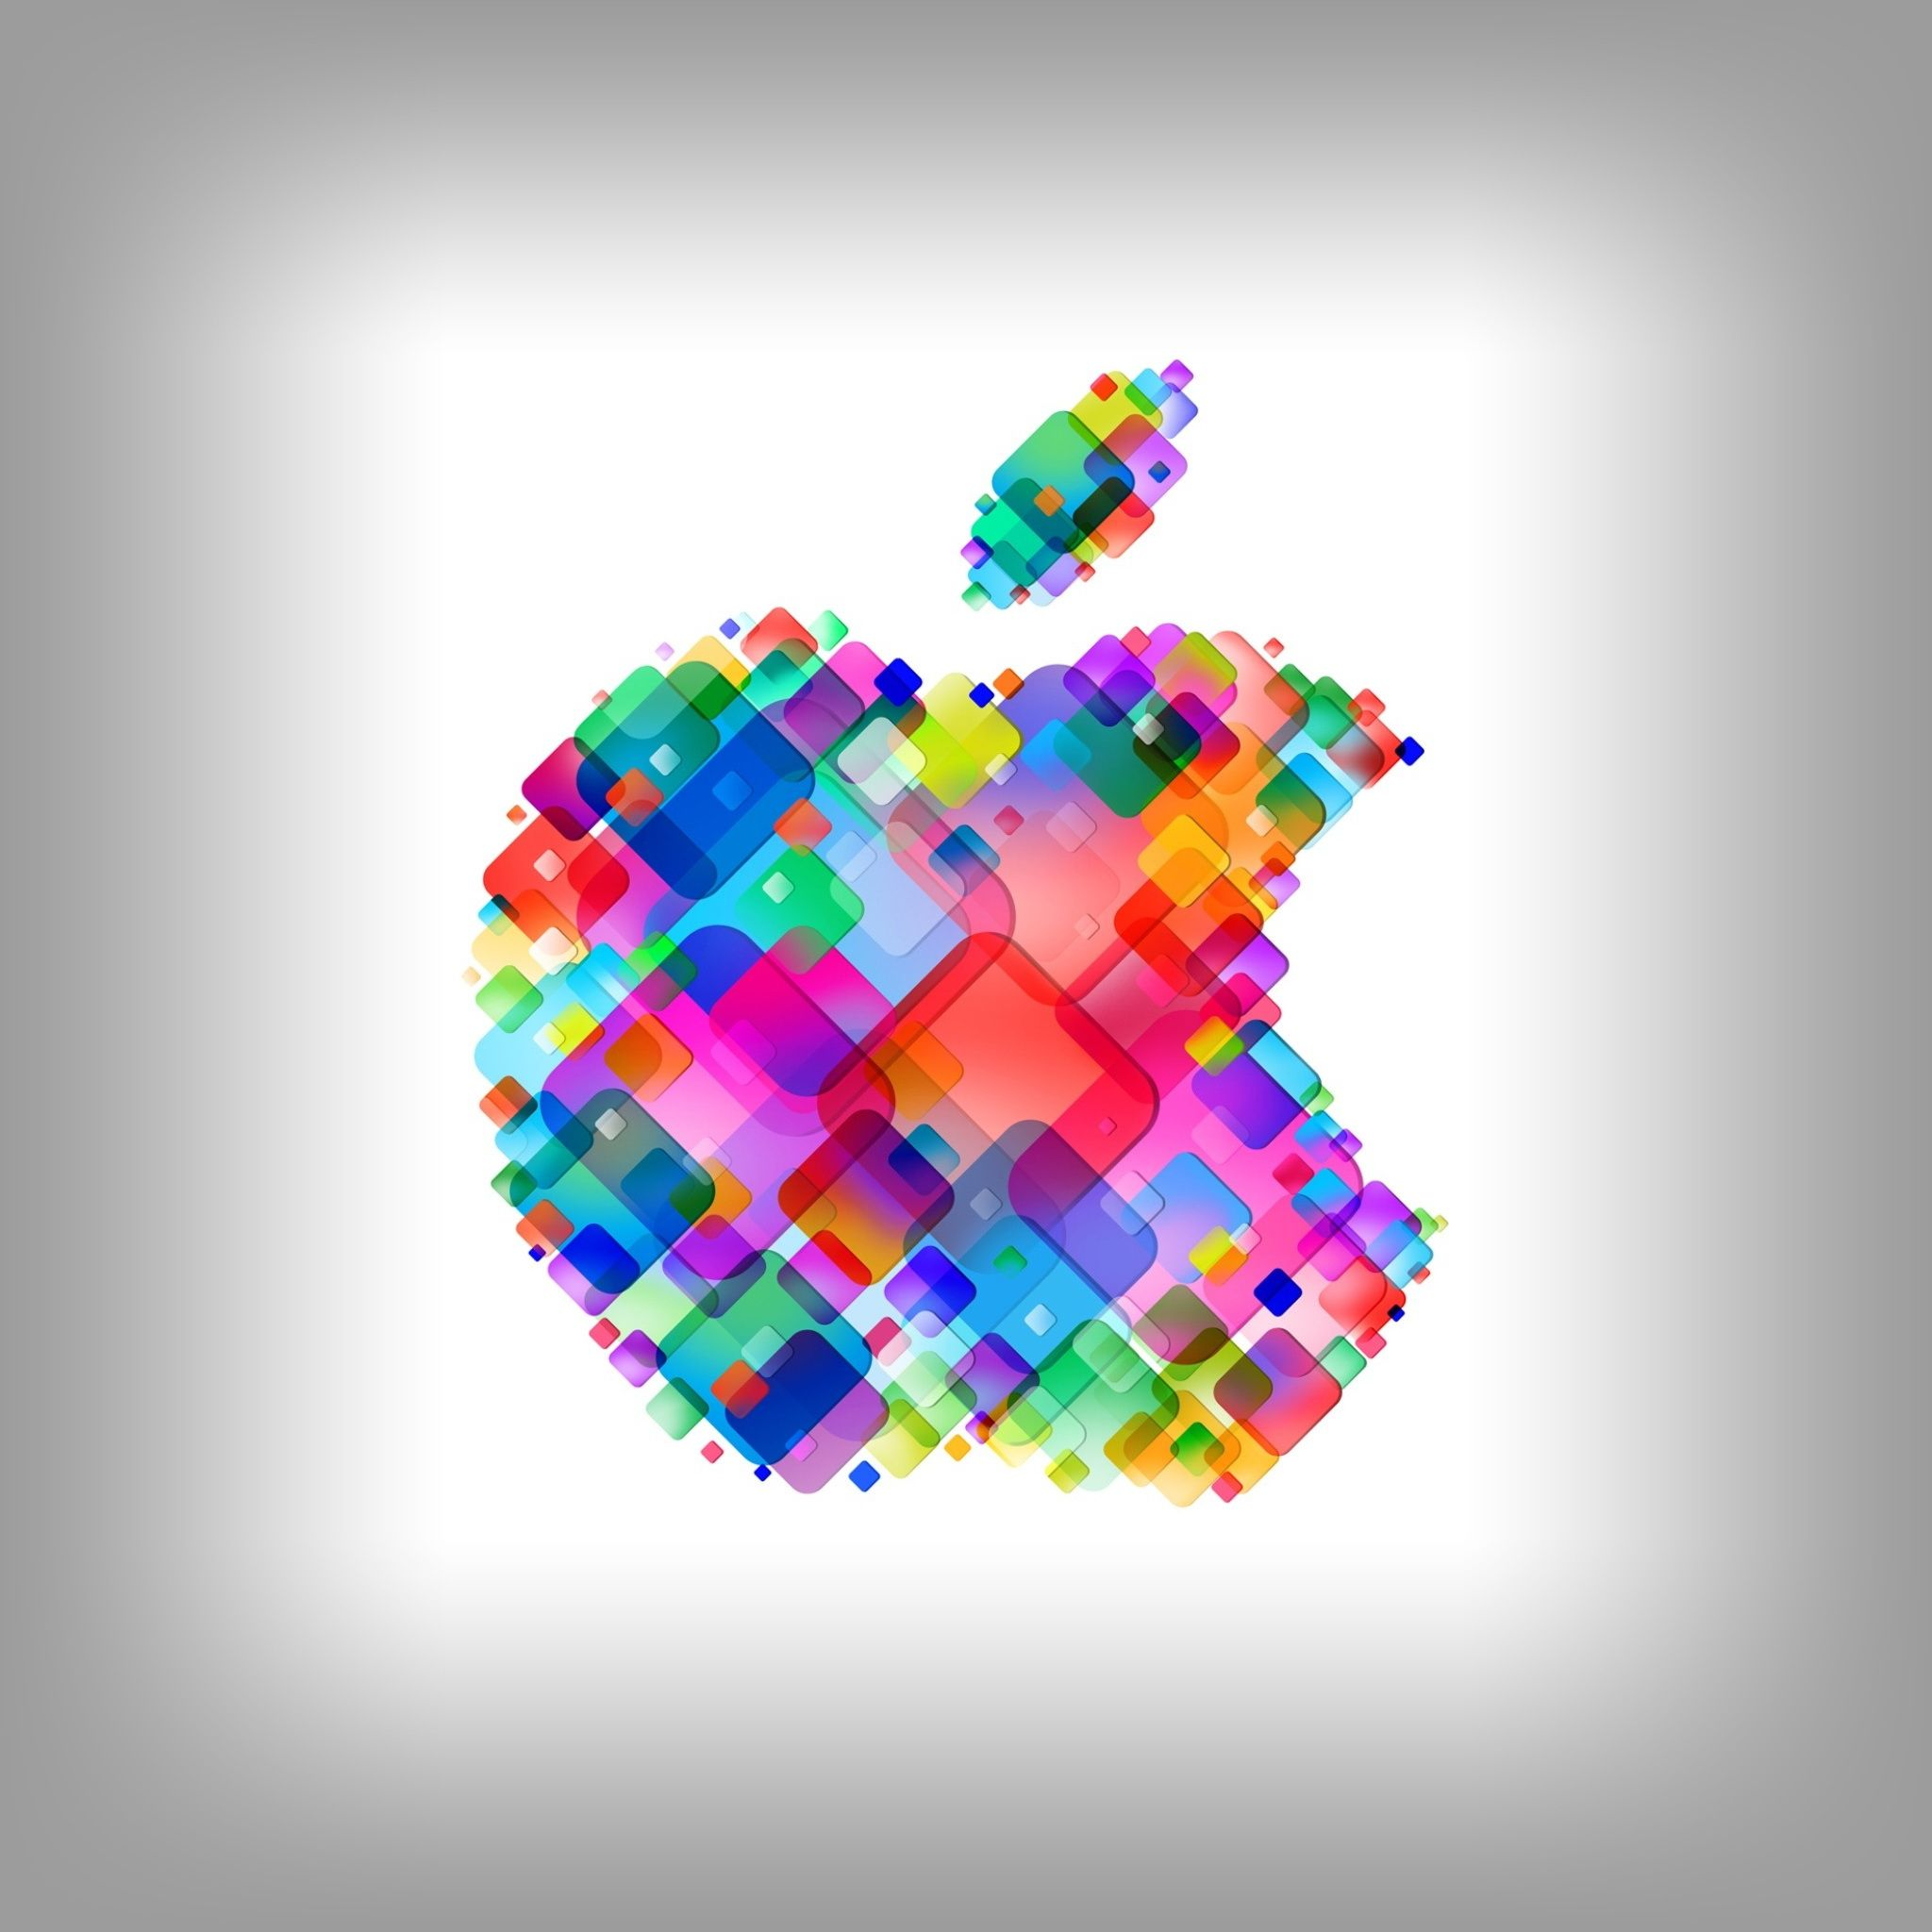 new ipad wallpaper hd 20482048 1727Techbeasts Techbeasts 2048x2048